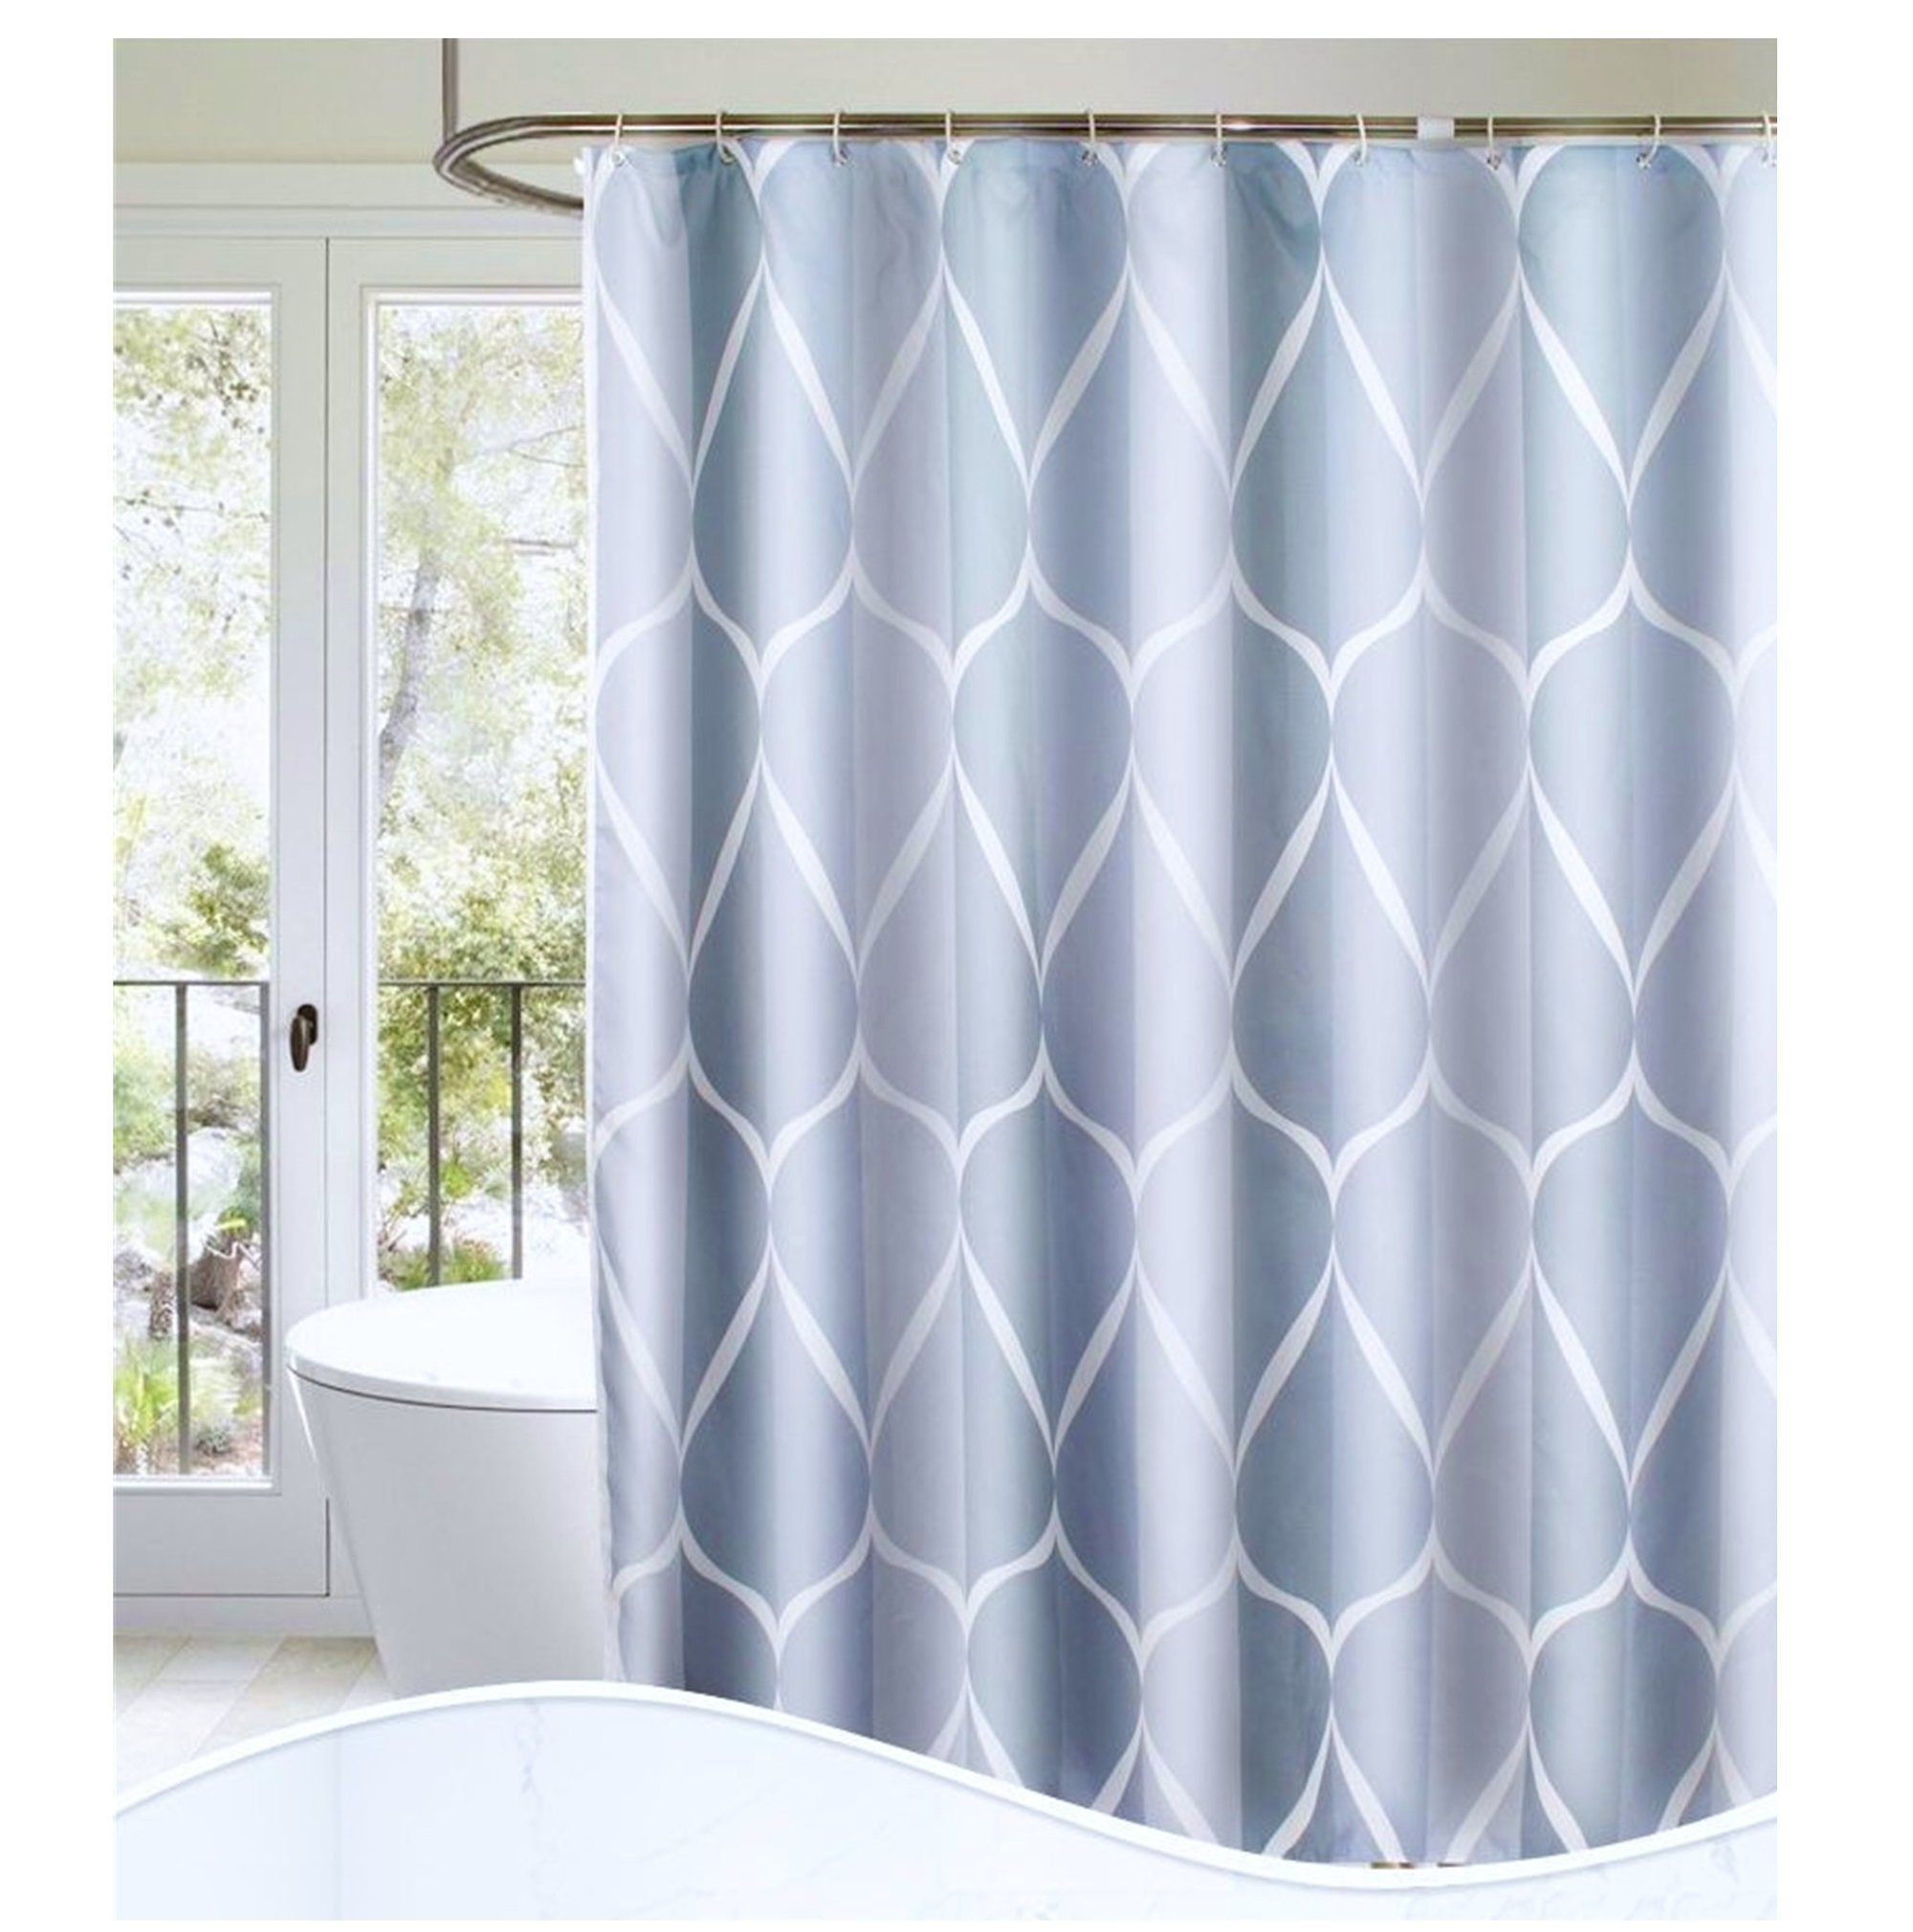 S·Lattye Luxury Shower Curtain Liner Water Repellent Fabric Washable Cloth (Hotel Quality, Friendly, Heavy Weight Hem) - 72'' x 78'', Long, Gray Ripple